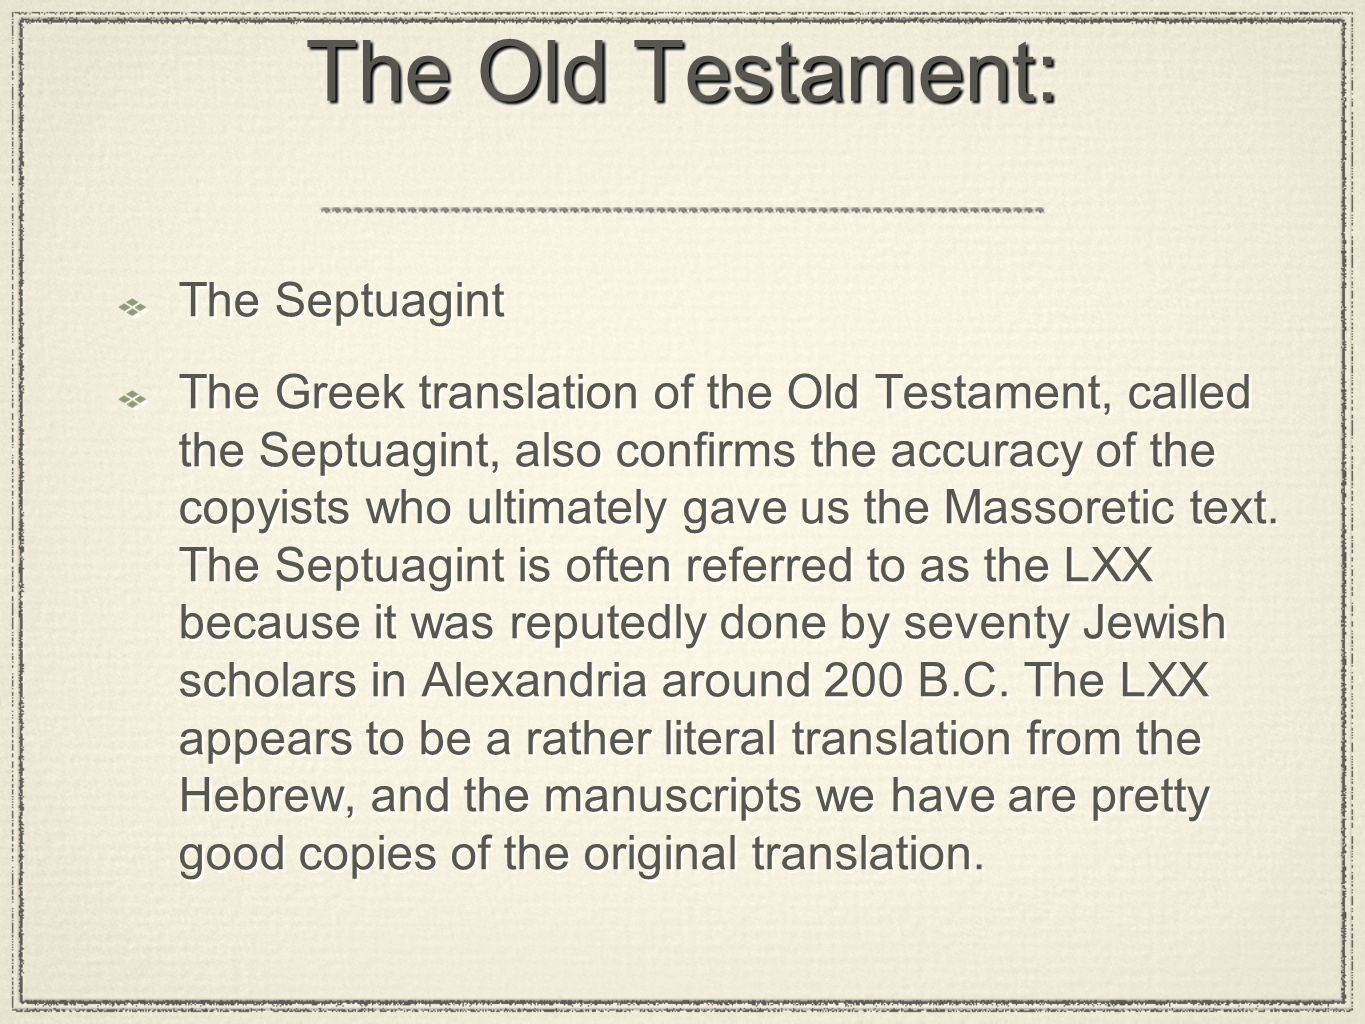 The Old Testament: The Septuagint